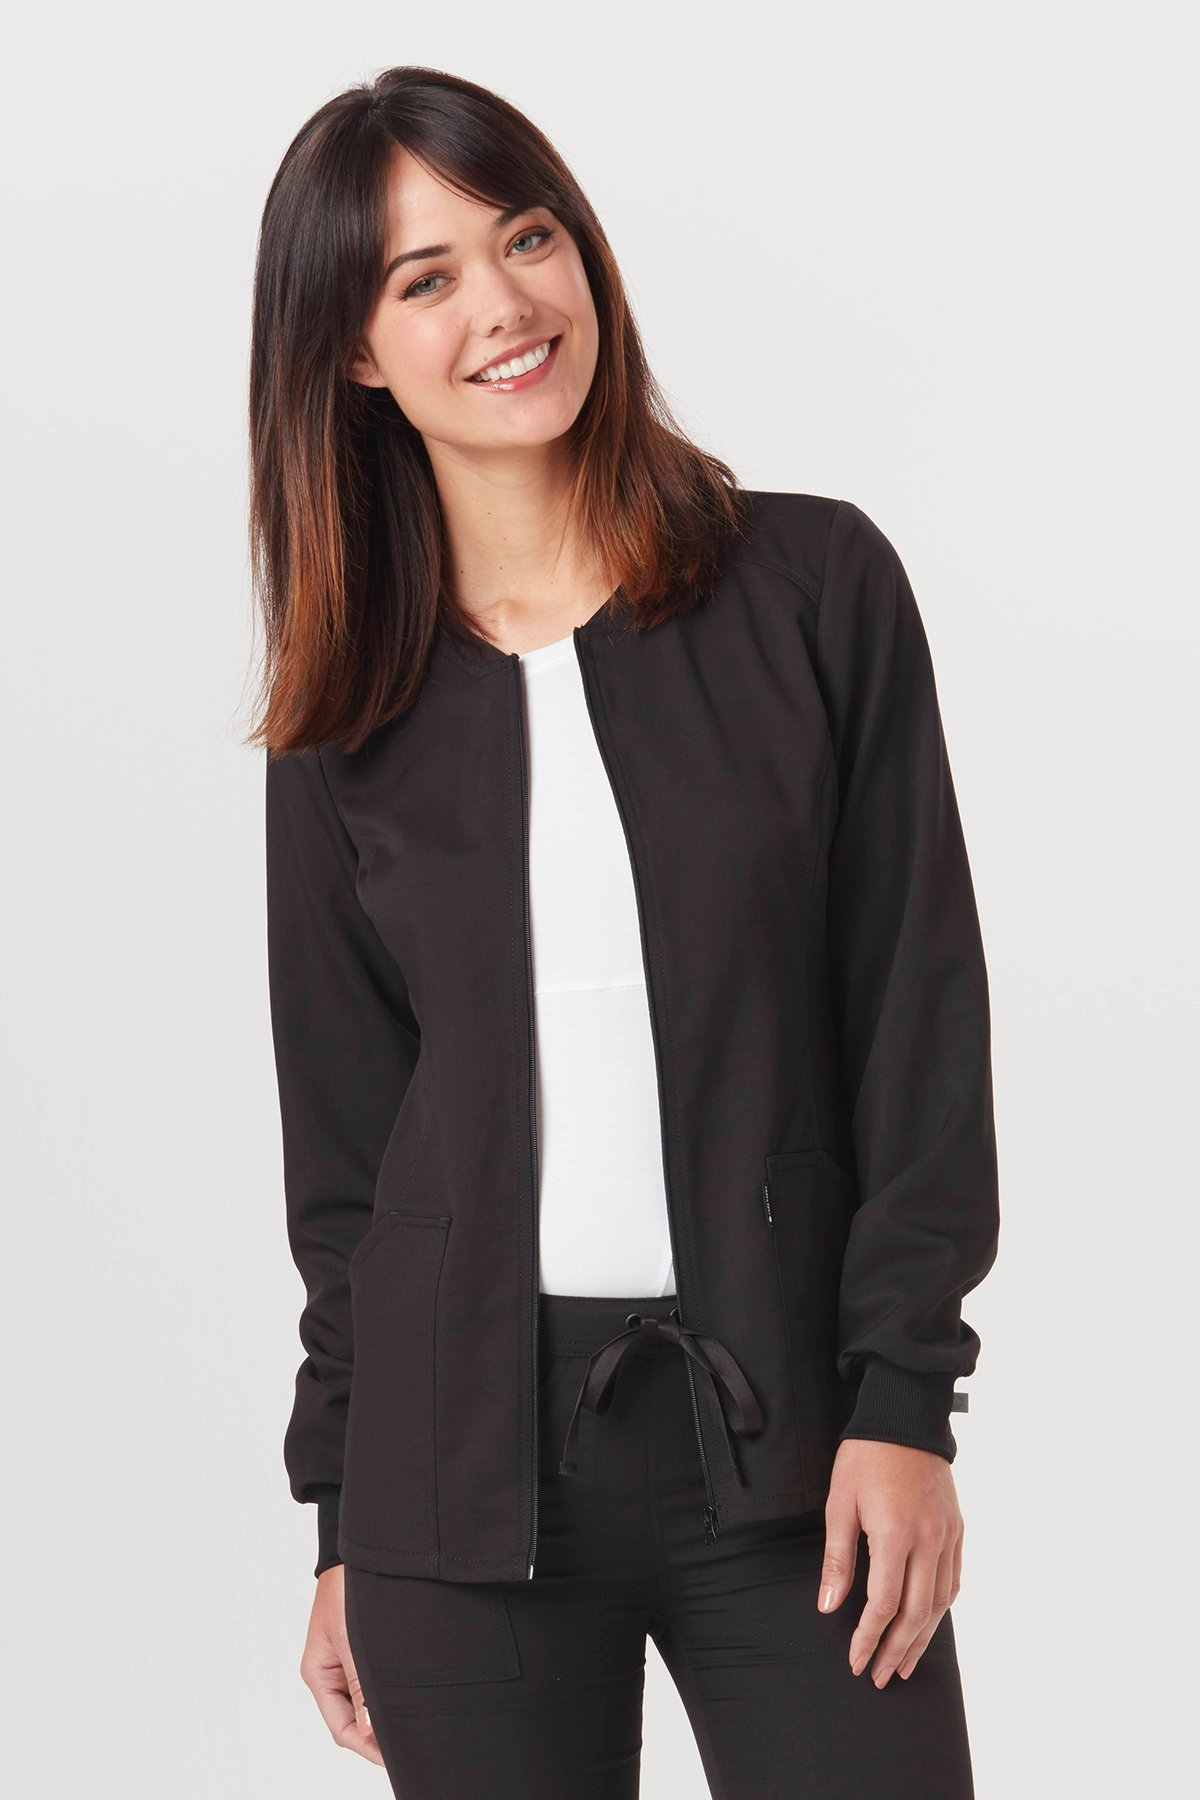 Code Happy Women's Zip Front Warm-up Solid Scrub Jacket, Pewter, XX-Small